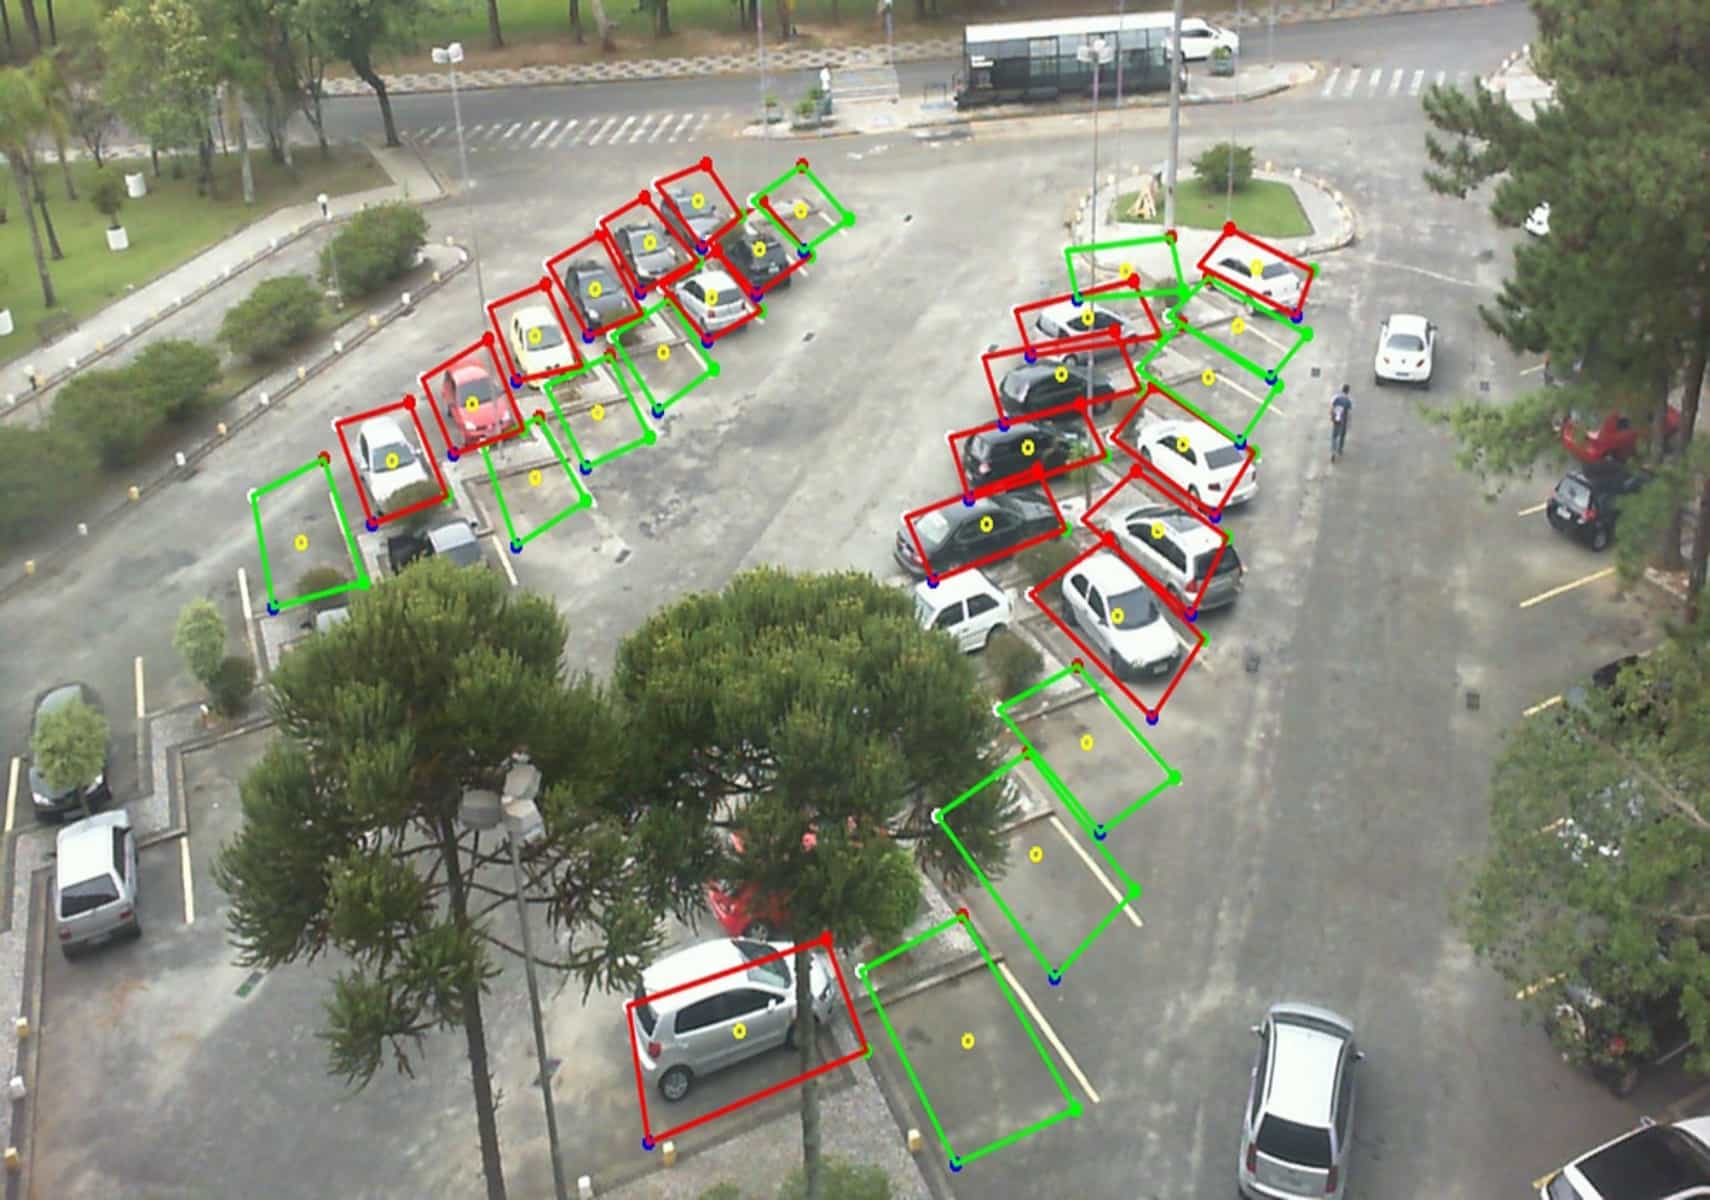 parking occupancy using camera